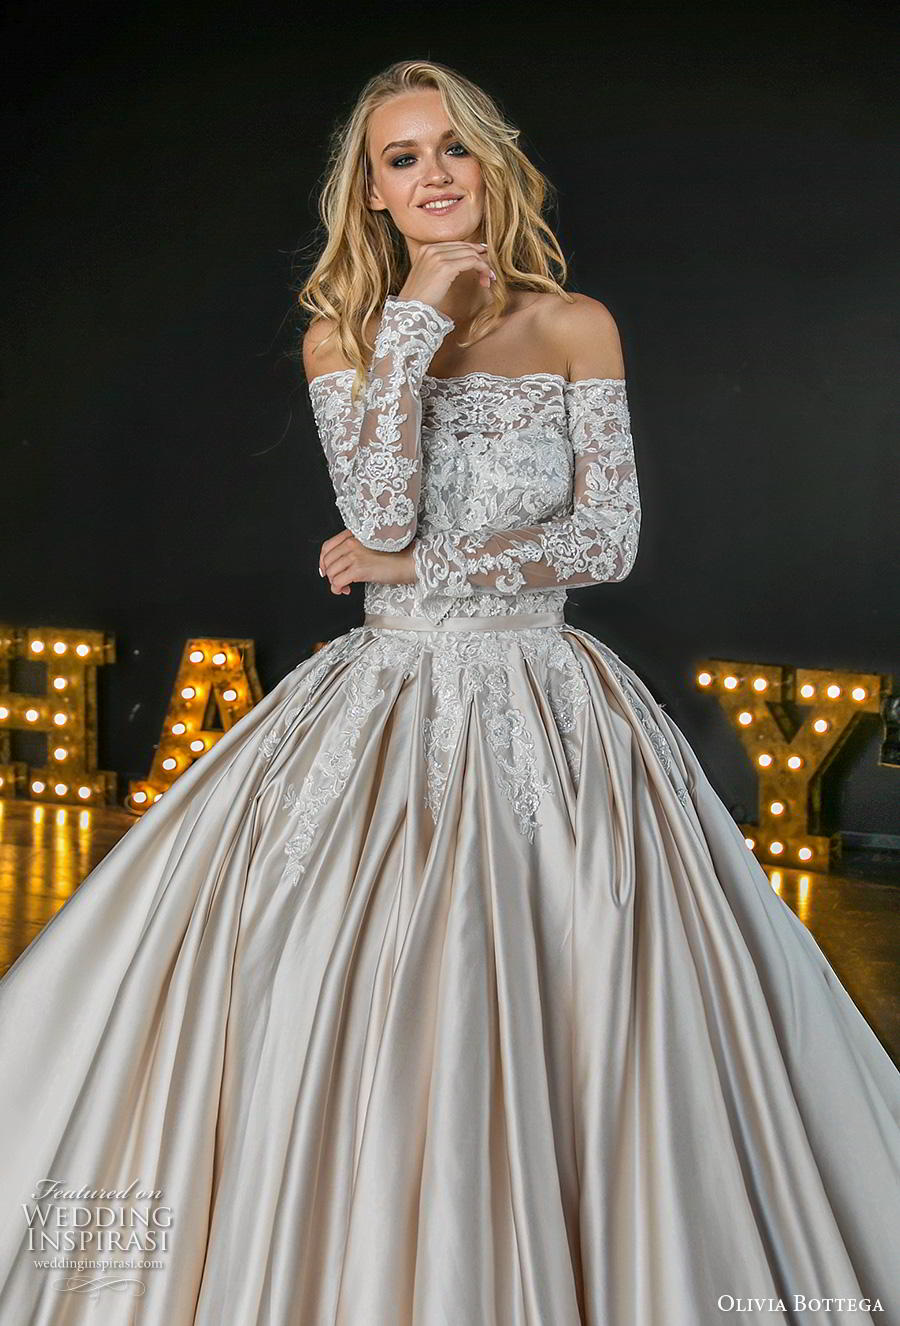 899a13b5274f5 olivia bottega 2019 bridal long sleeves off shoulder straight across  neckline heavily embellished bodice ball gown